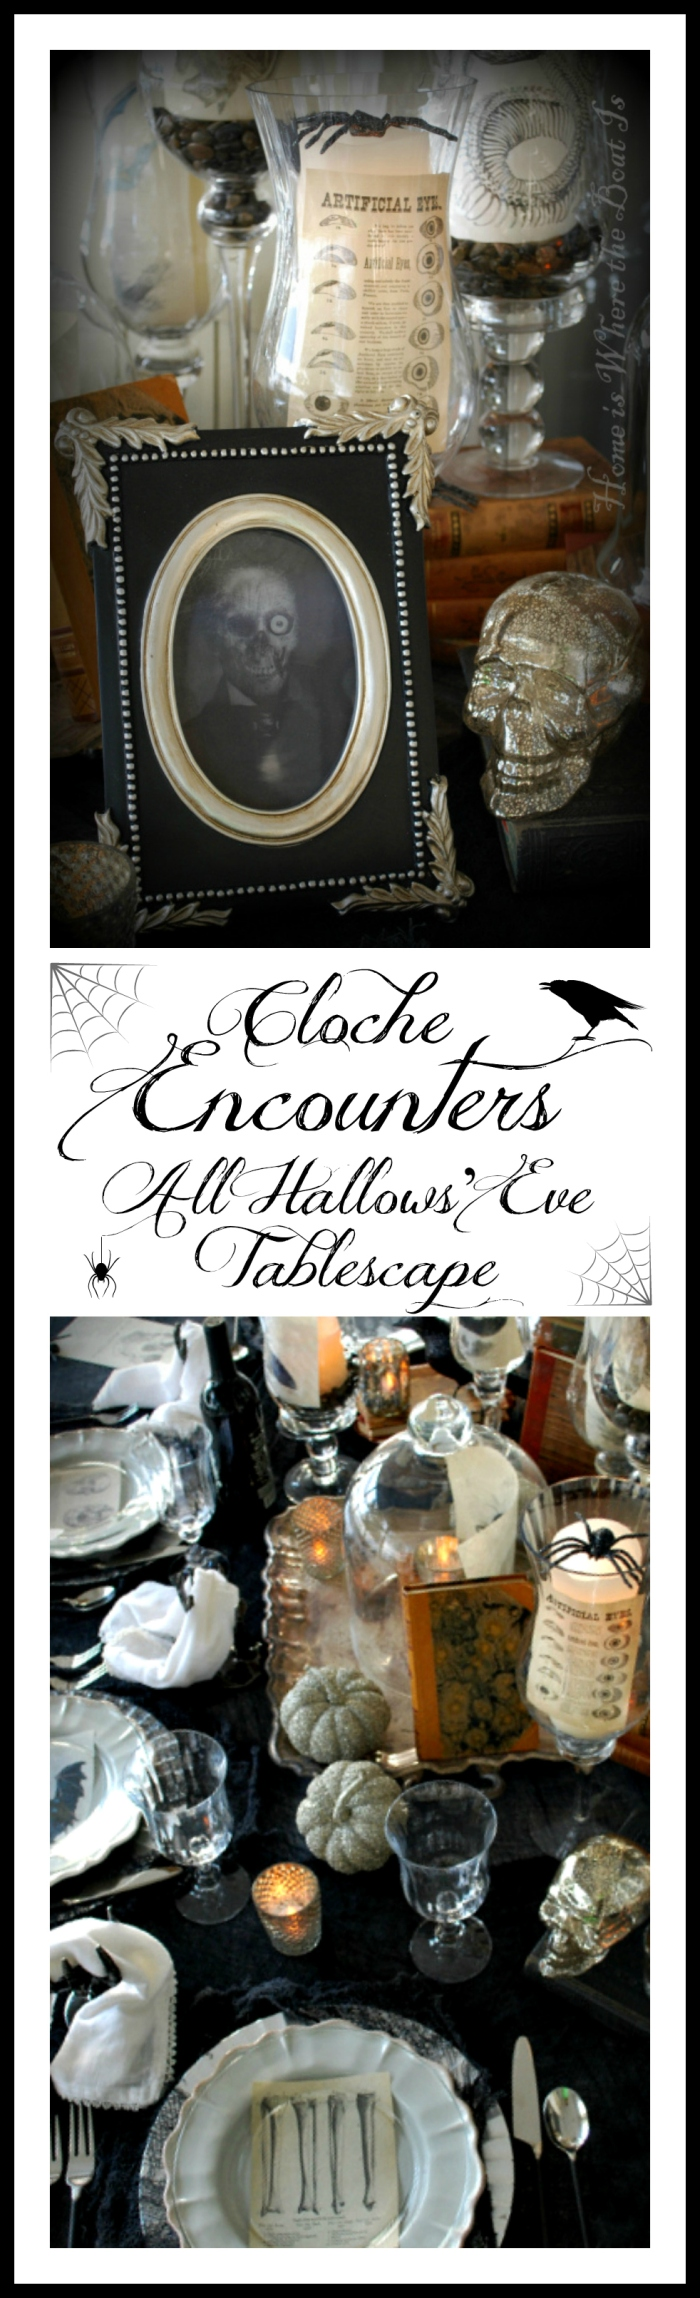 cloche-encounters-all-hallows-eve-table